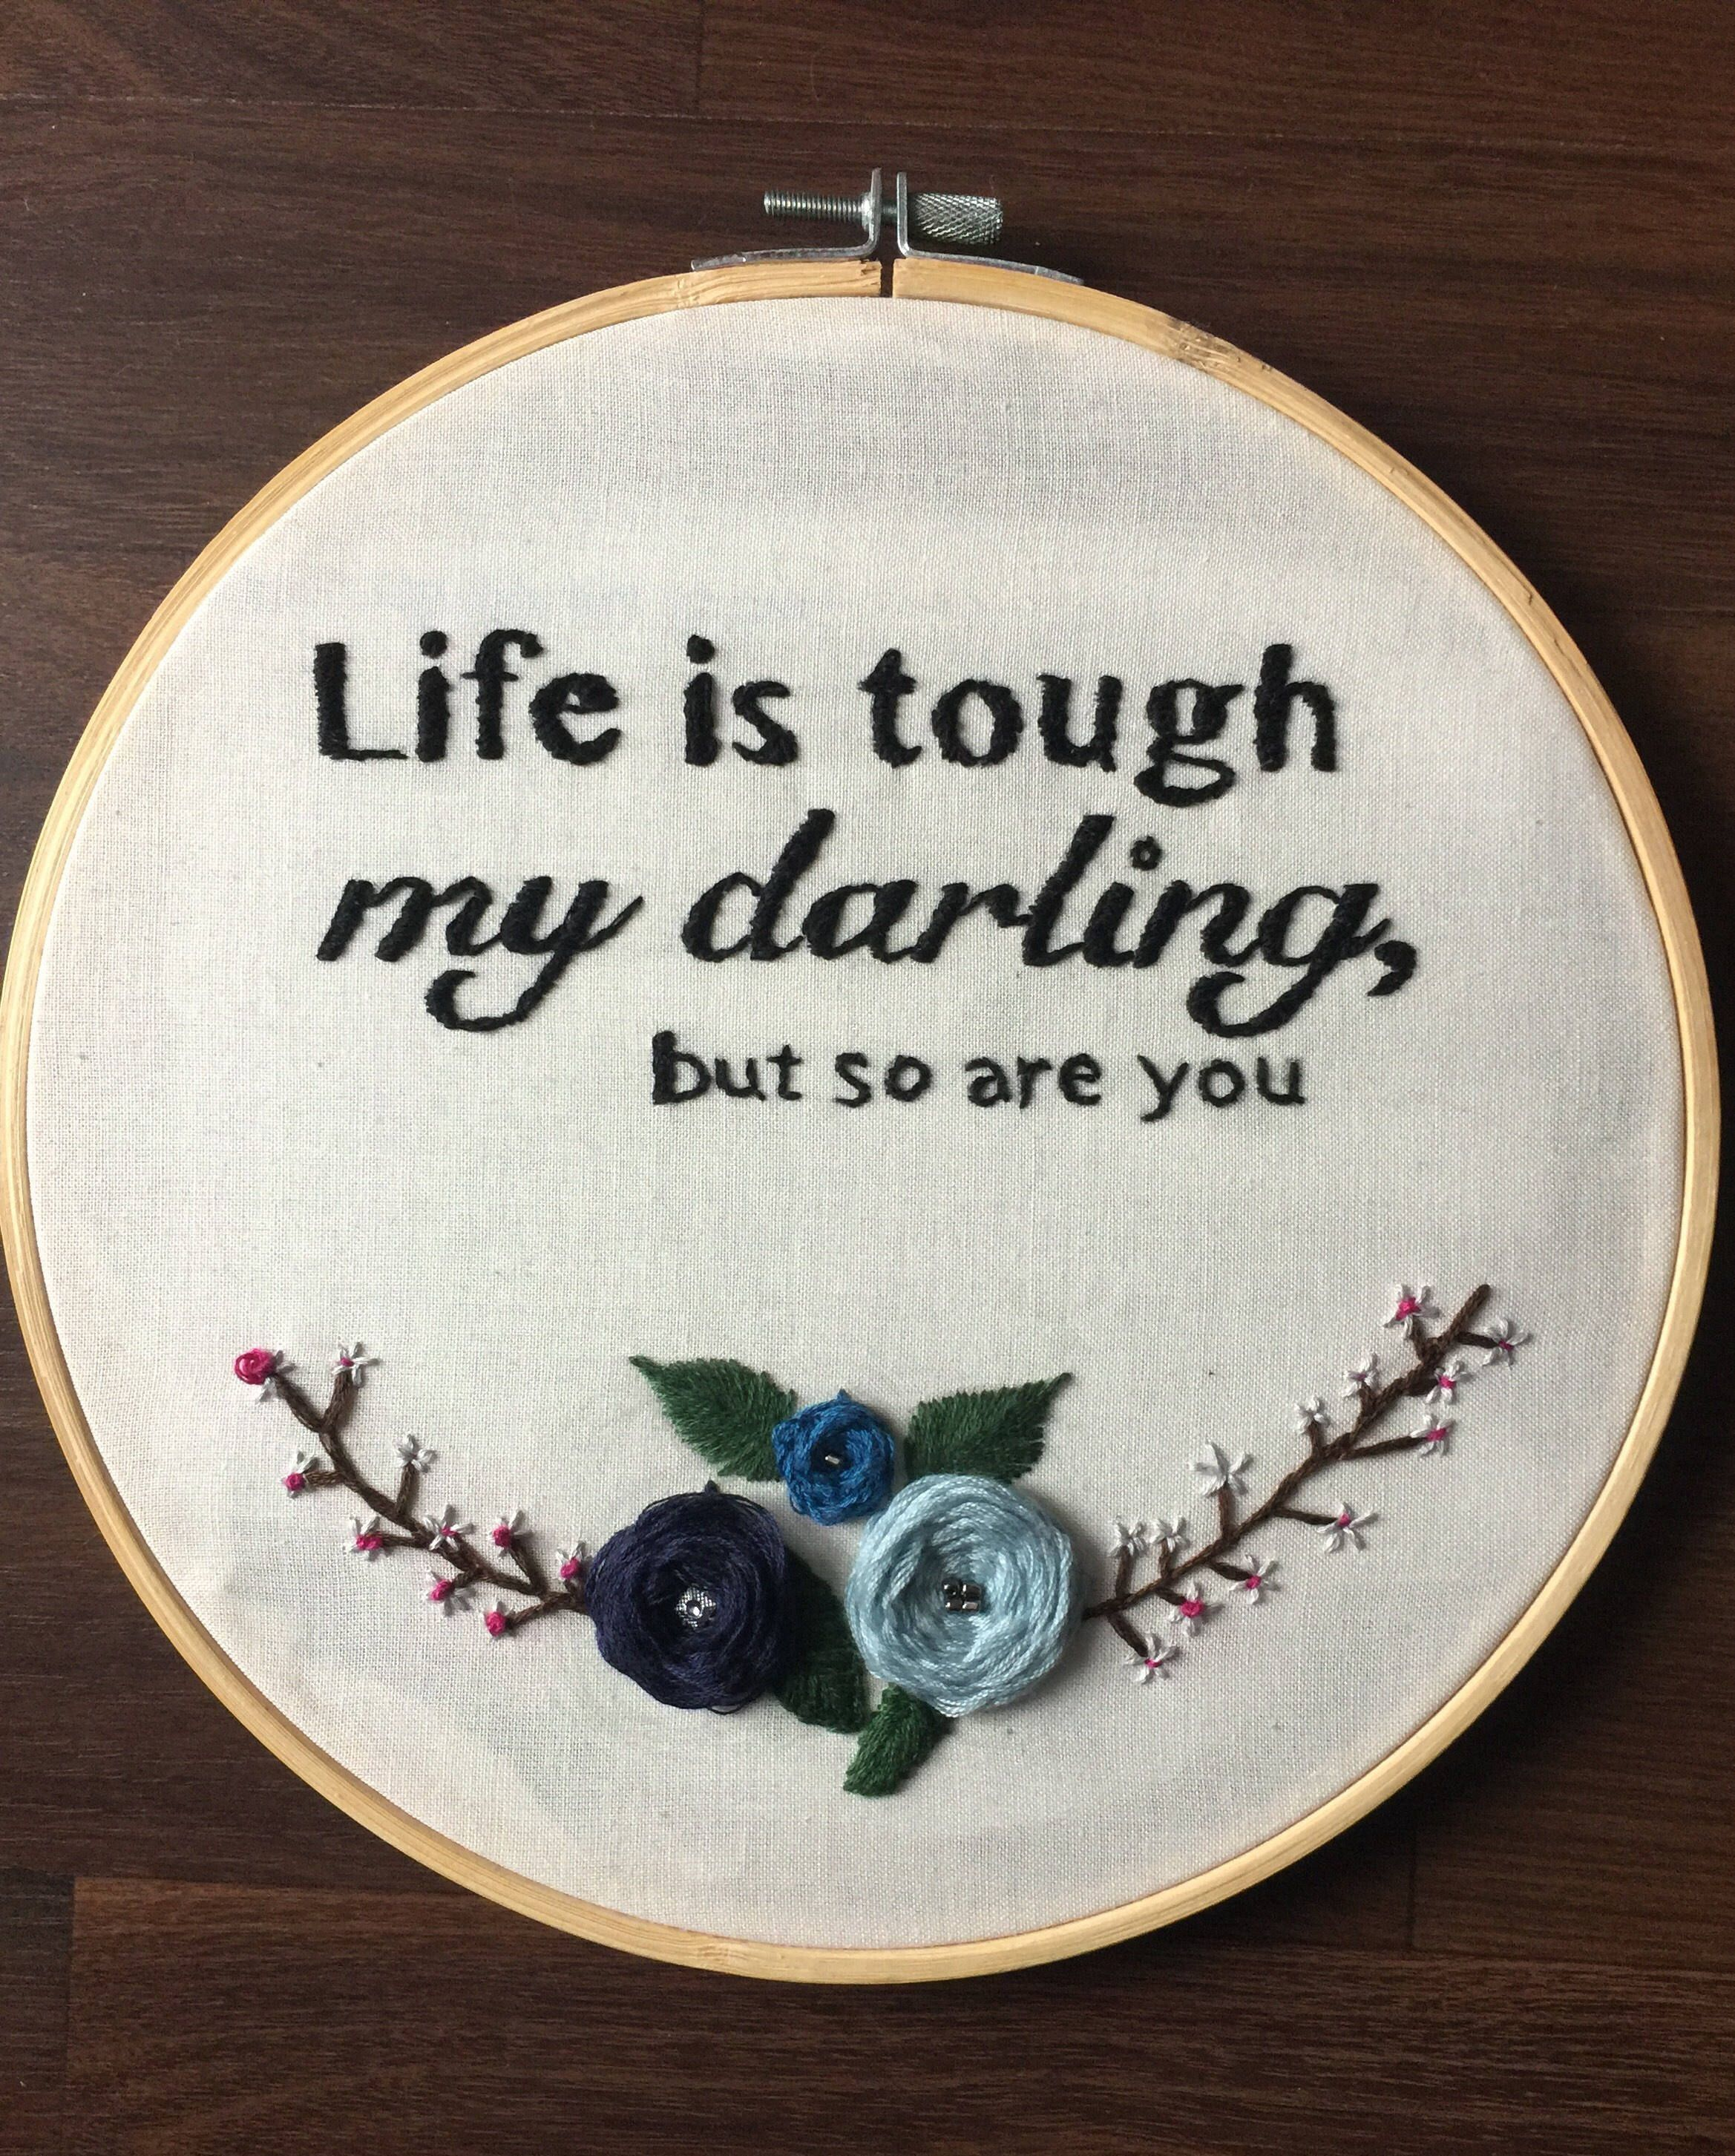 Excited to share the latest addition to my #etsy shop: Life is tough ...